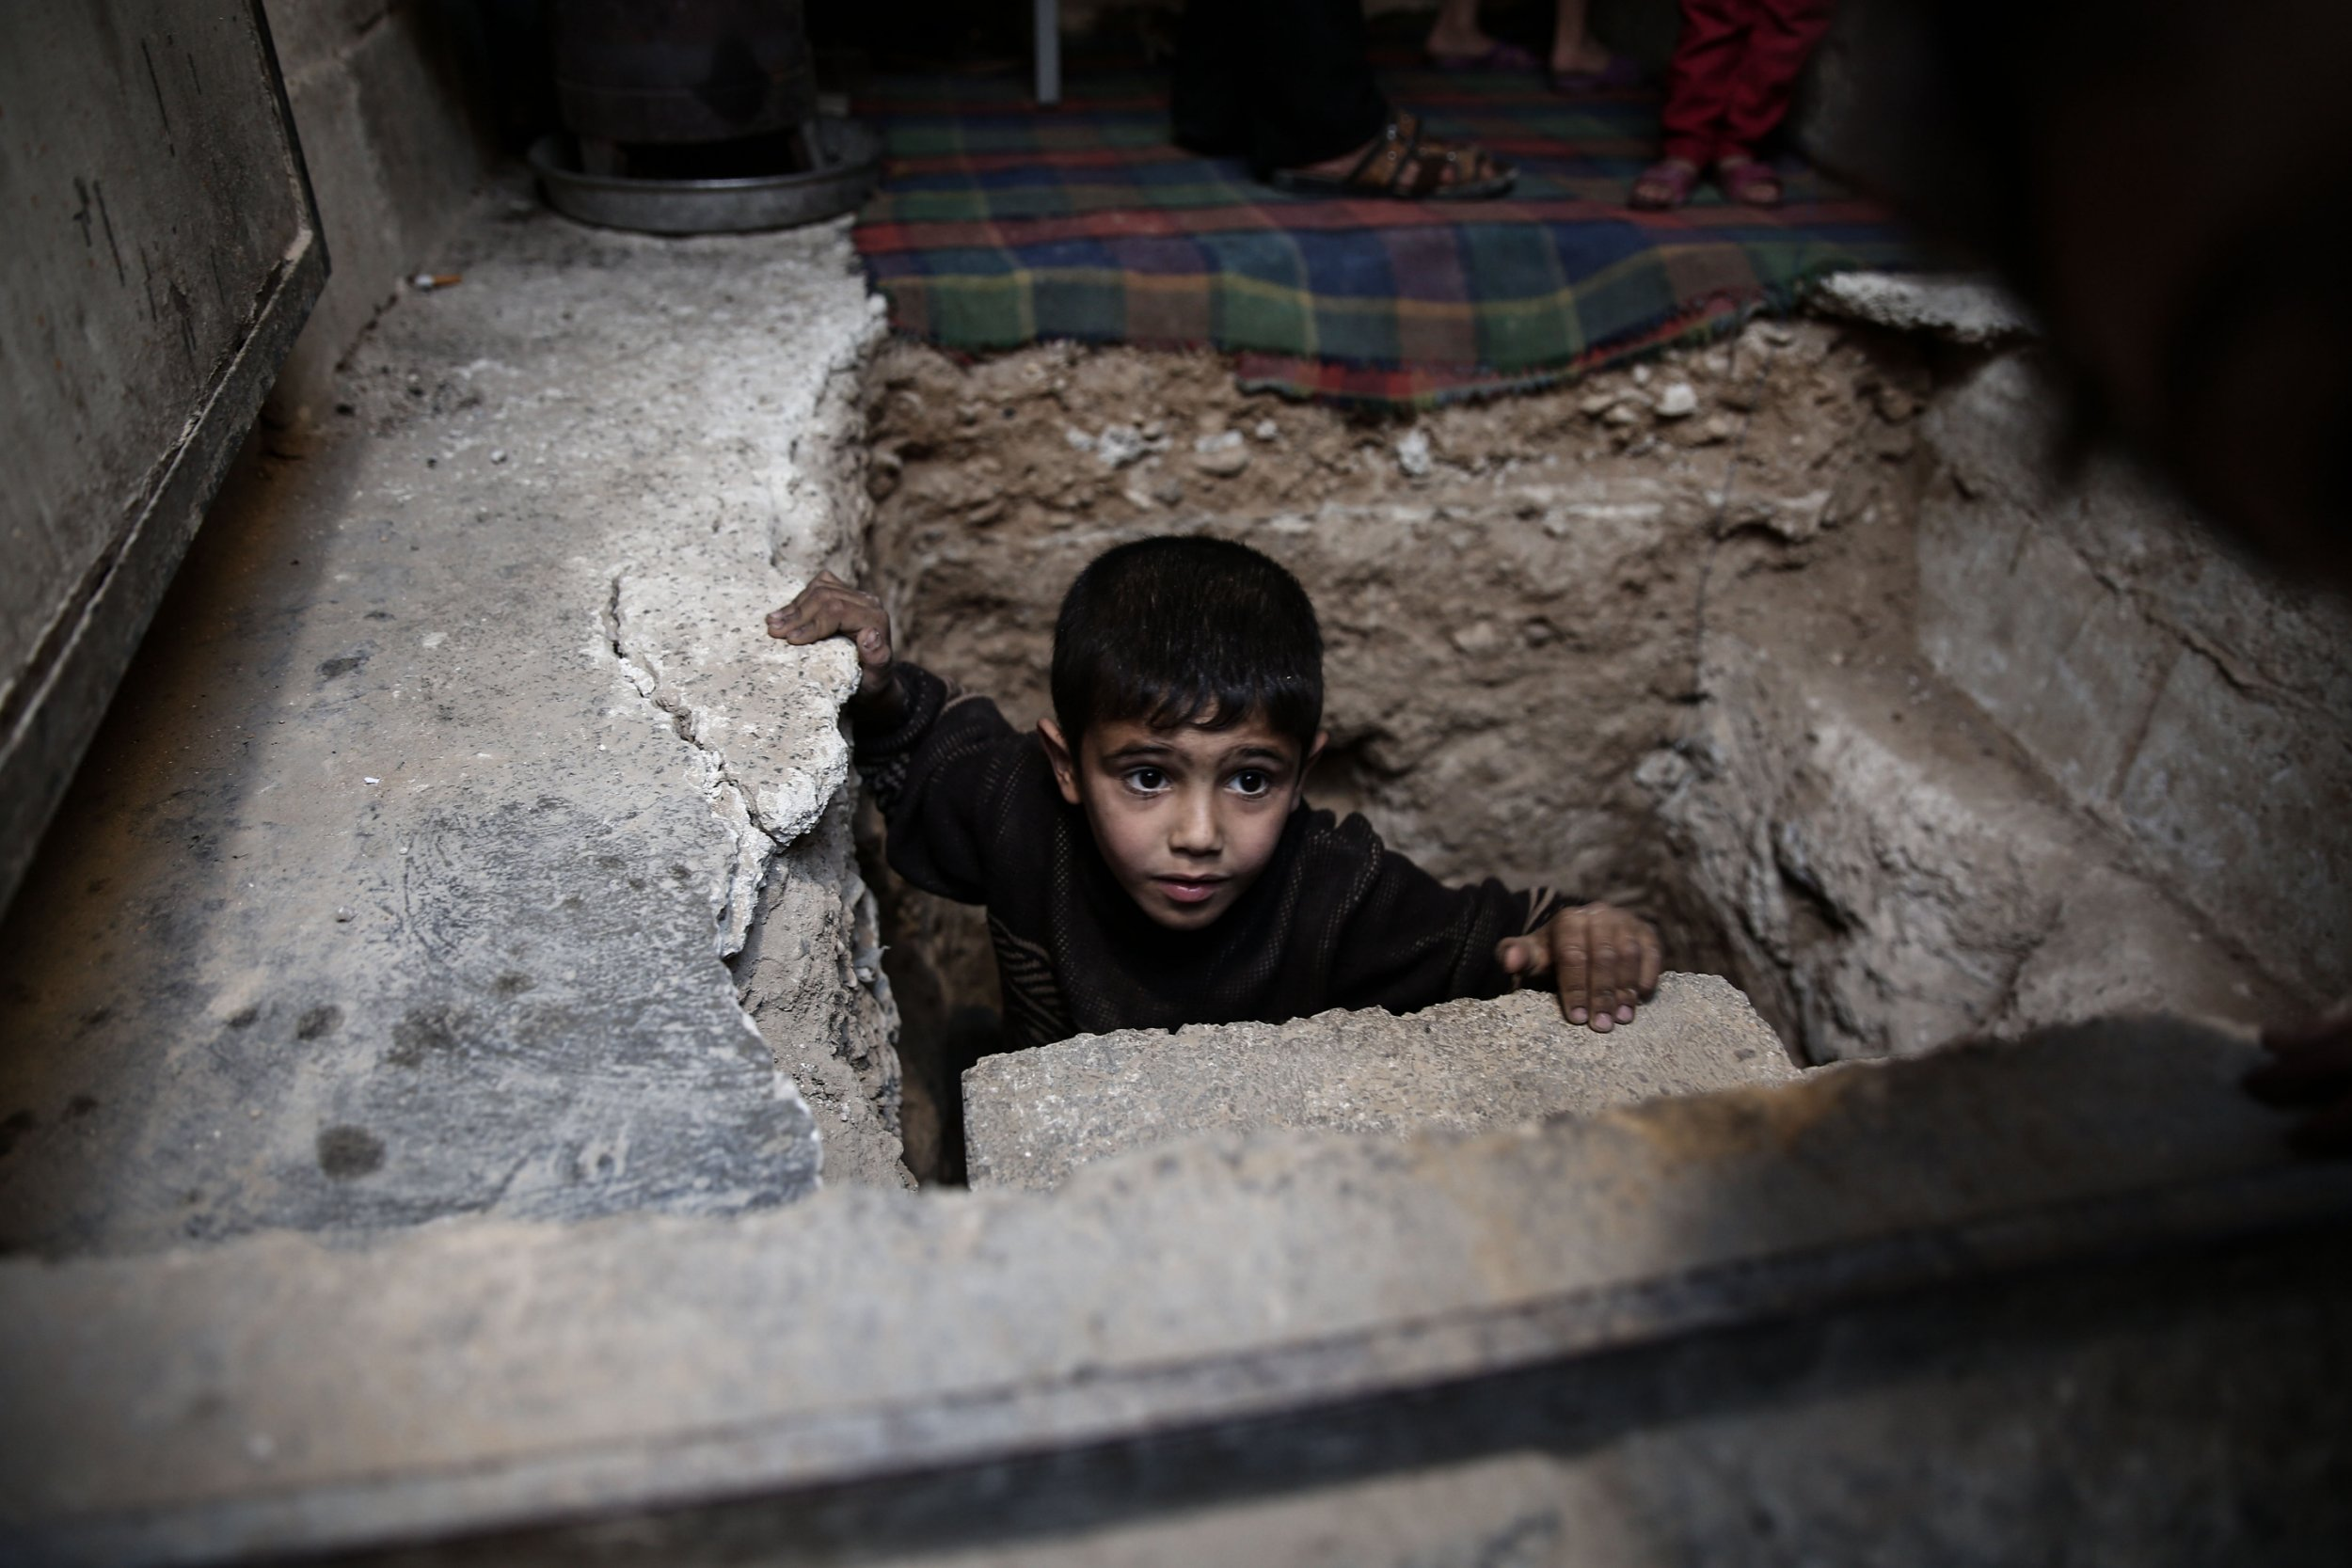 TOPSHOT - A Syrian boy climbs out of Abu Omar's shelter in the rebel-held town of Douma, on the eastern outskirts of Damascus, on October 30, 2016. Abu Omar, with the help of his neighbour, was able to dig and prepare an underground shelter consisting of a single room in the space of 2 weeks. The shelter is 4 meters below ground and has an air vent for emergencies. / AFP / Sameer Al-Doumy (Photo credit should read SAMEER AL-DOUMY/AFP/Getty Images)